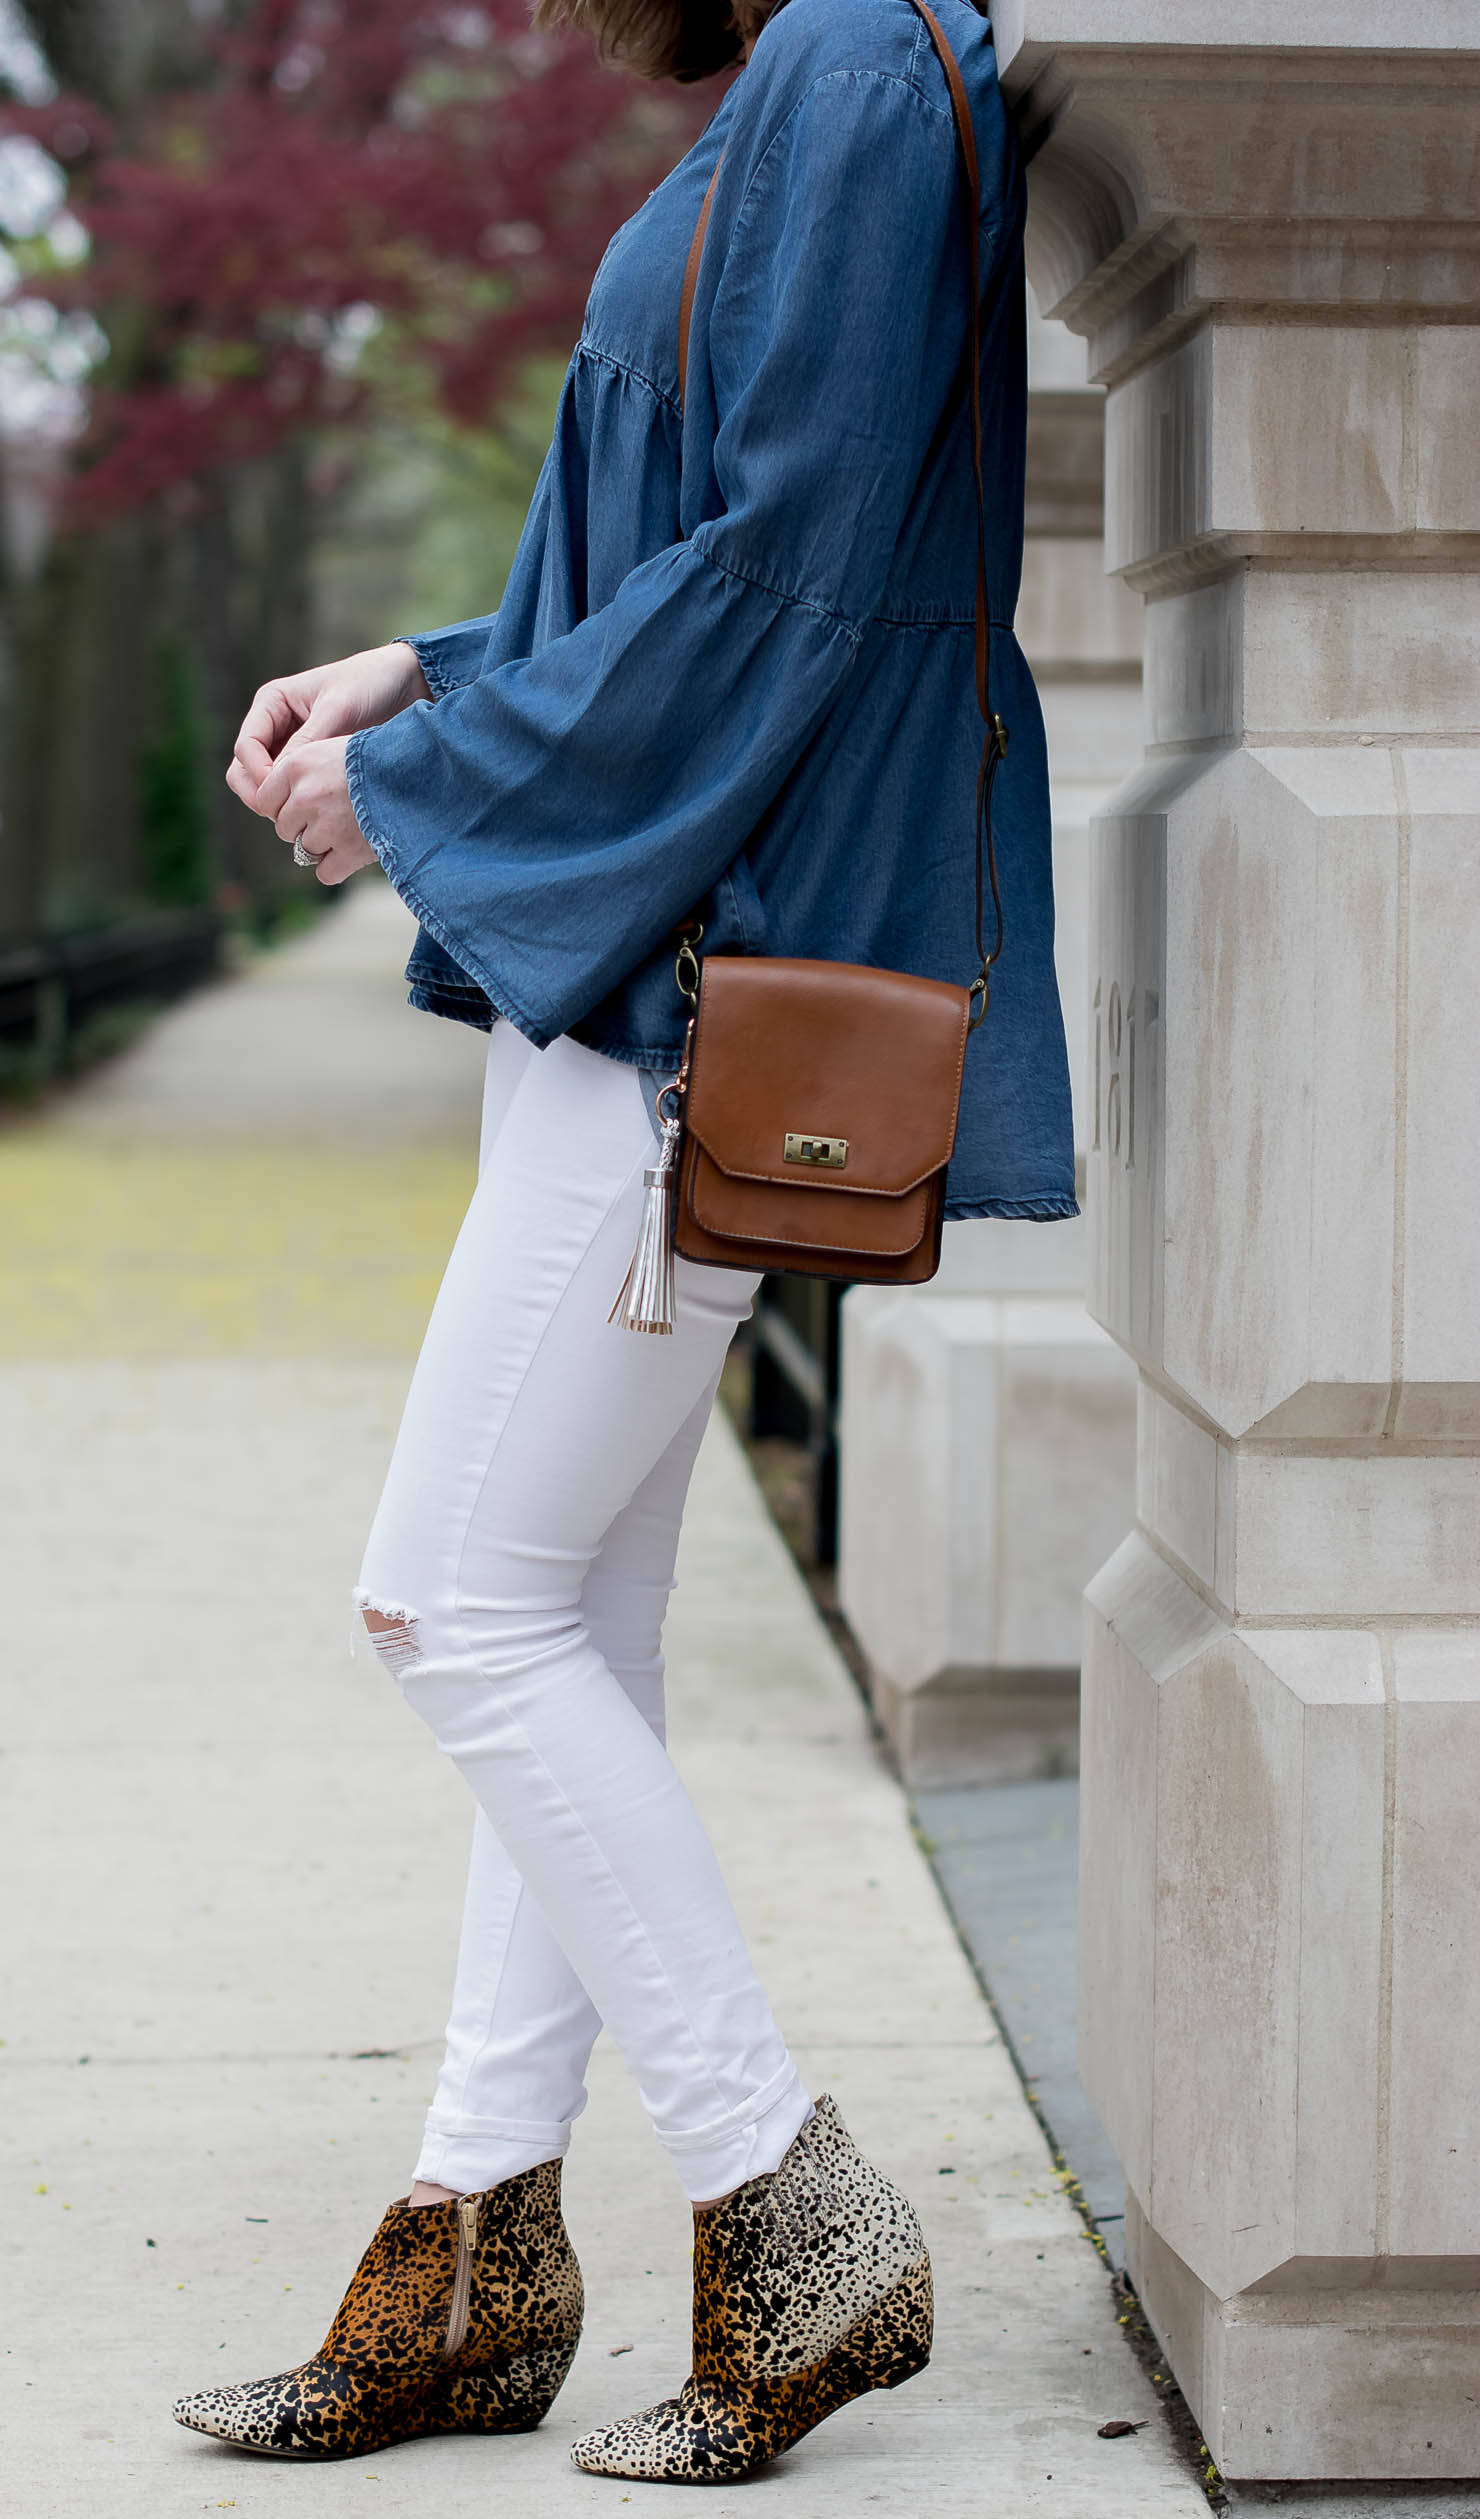 transitioning-white-jeans-for-fall-hm-denim-bell-sleeve-top-matisse-leopard-booties-metallic-bag-tassel-charms